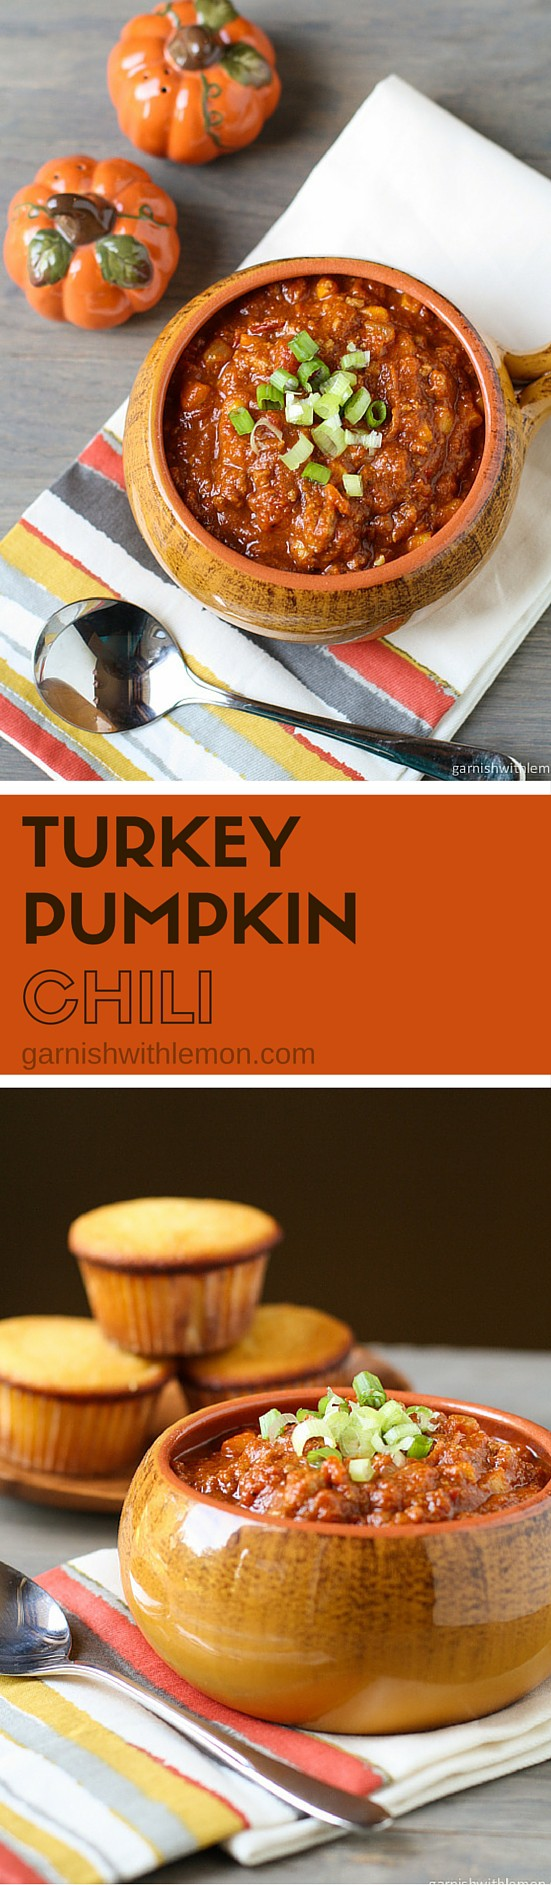 Turkey Pumpkin Chili is the perfect twist on chili for fall. Savory, smoky and delicious and can be made in your crock pot or on the stove top.